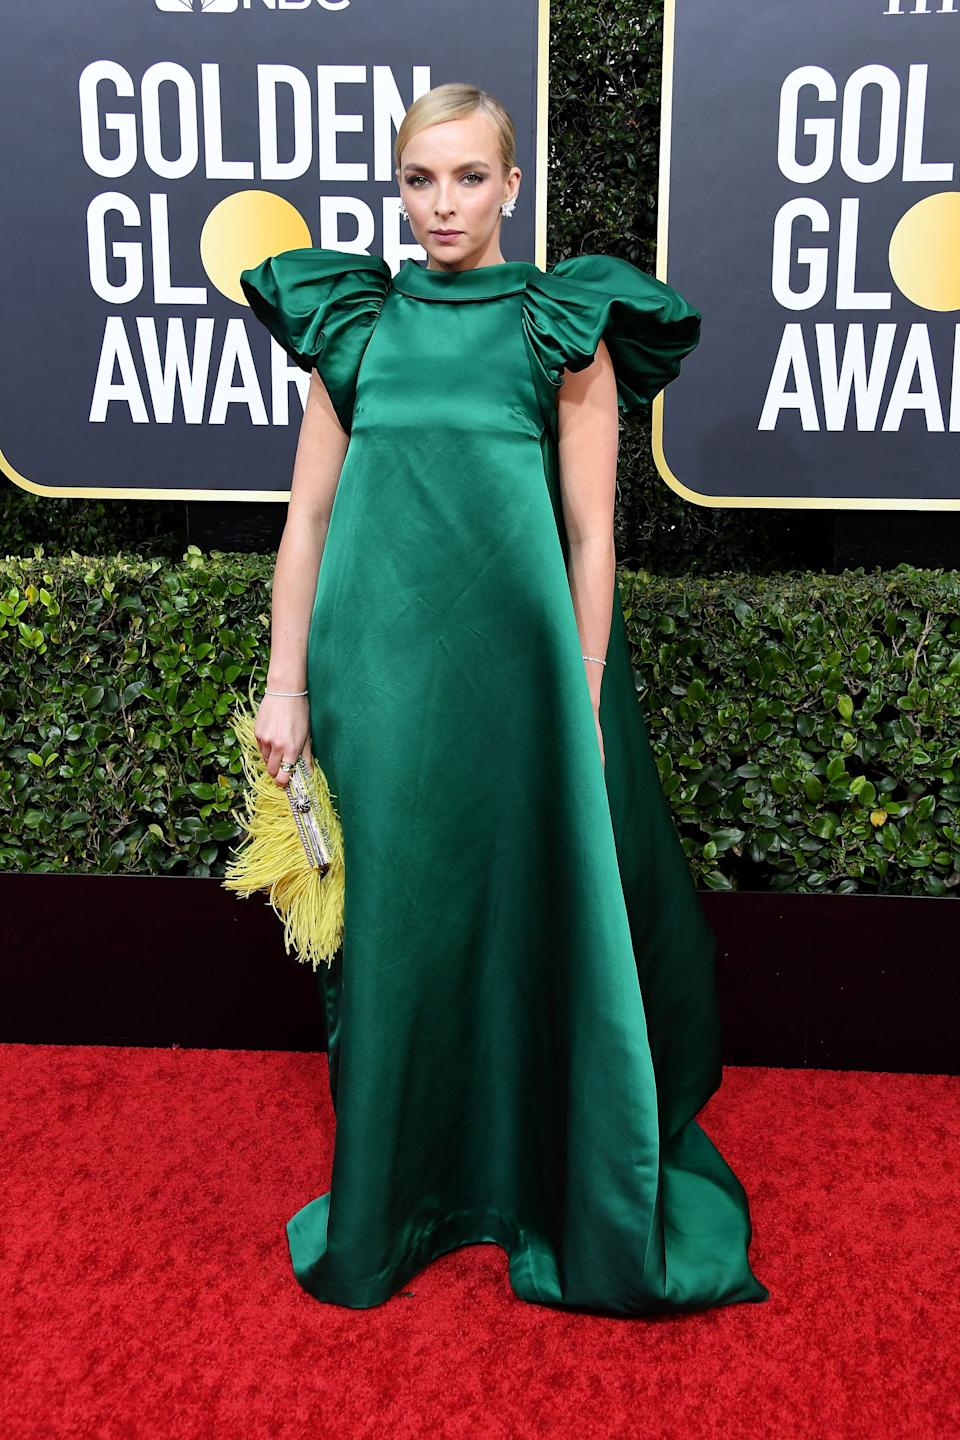 This emerald colour is to die for, and the oversized cut is weirdly charming.